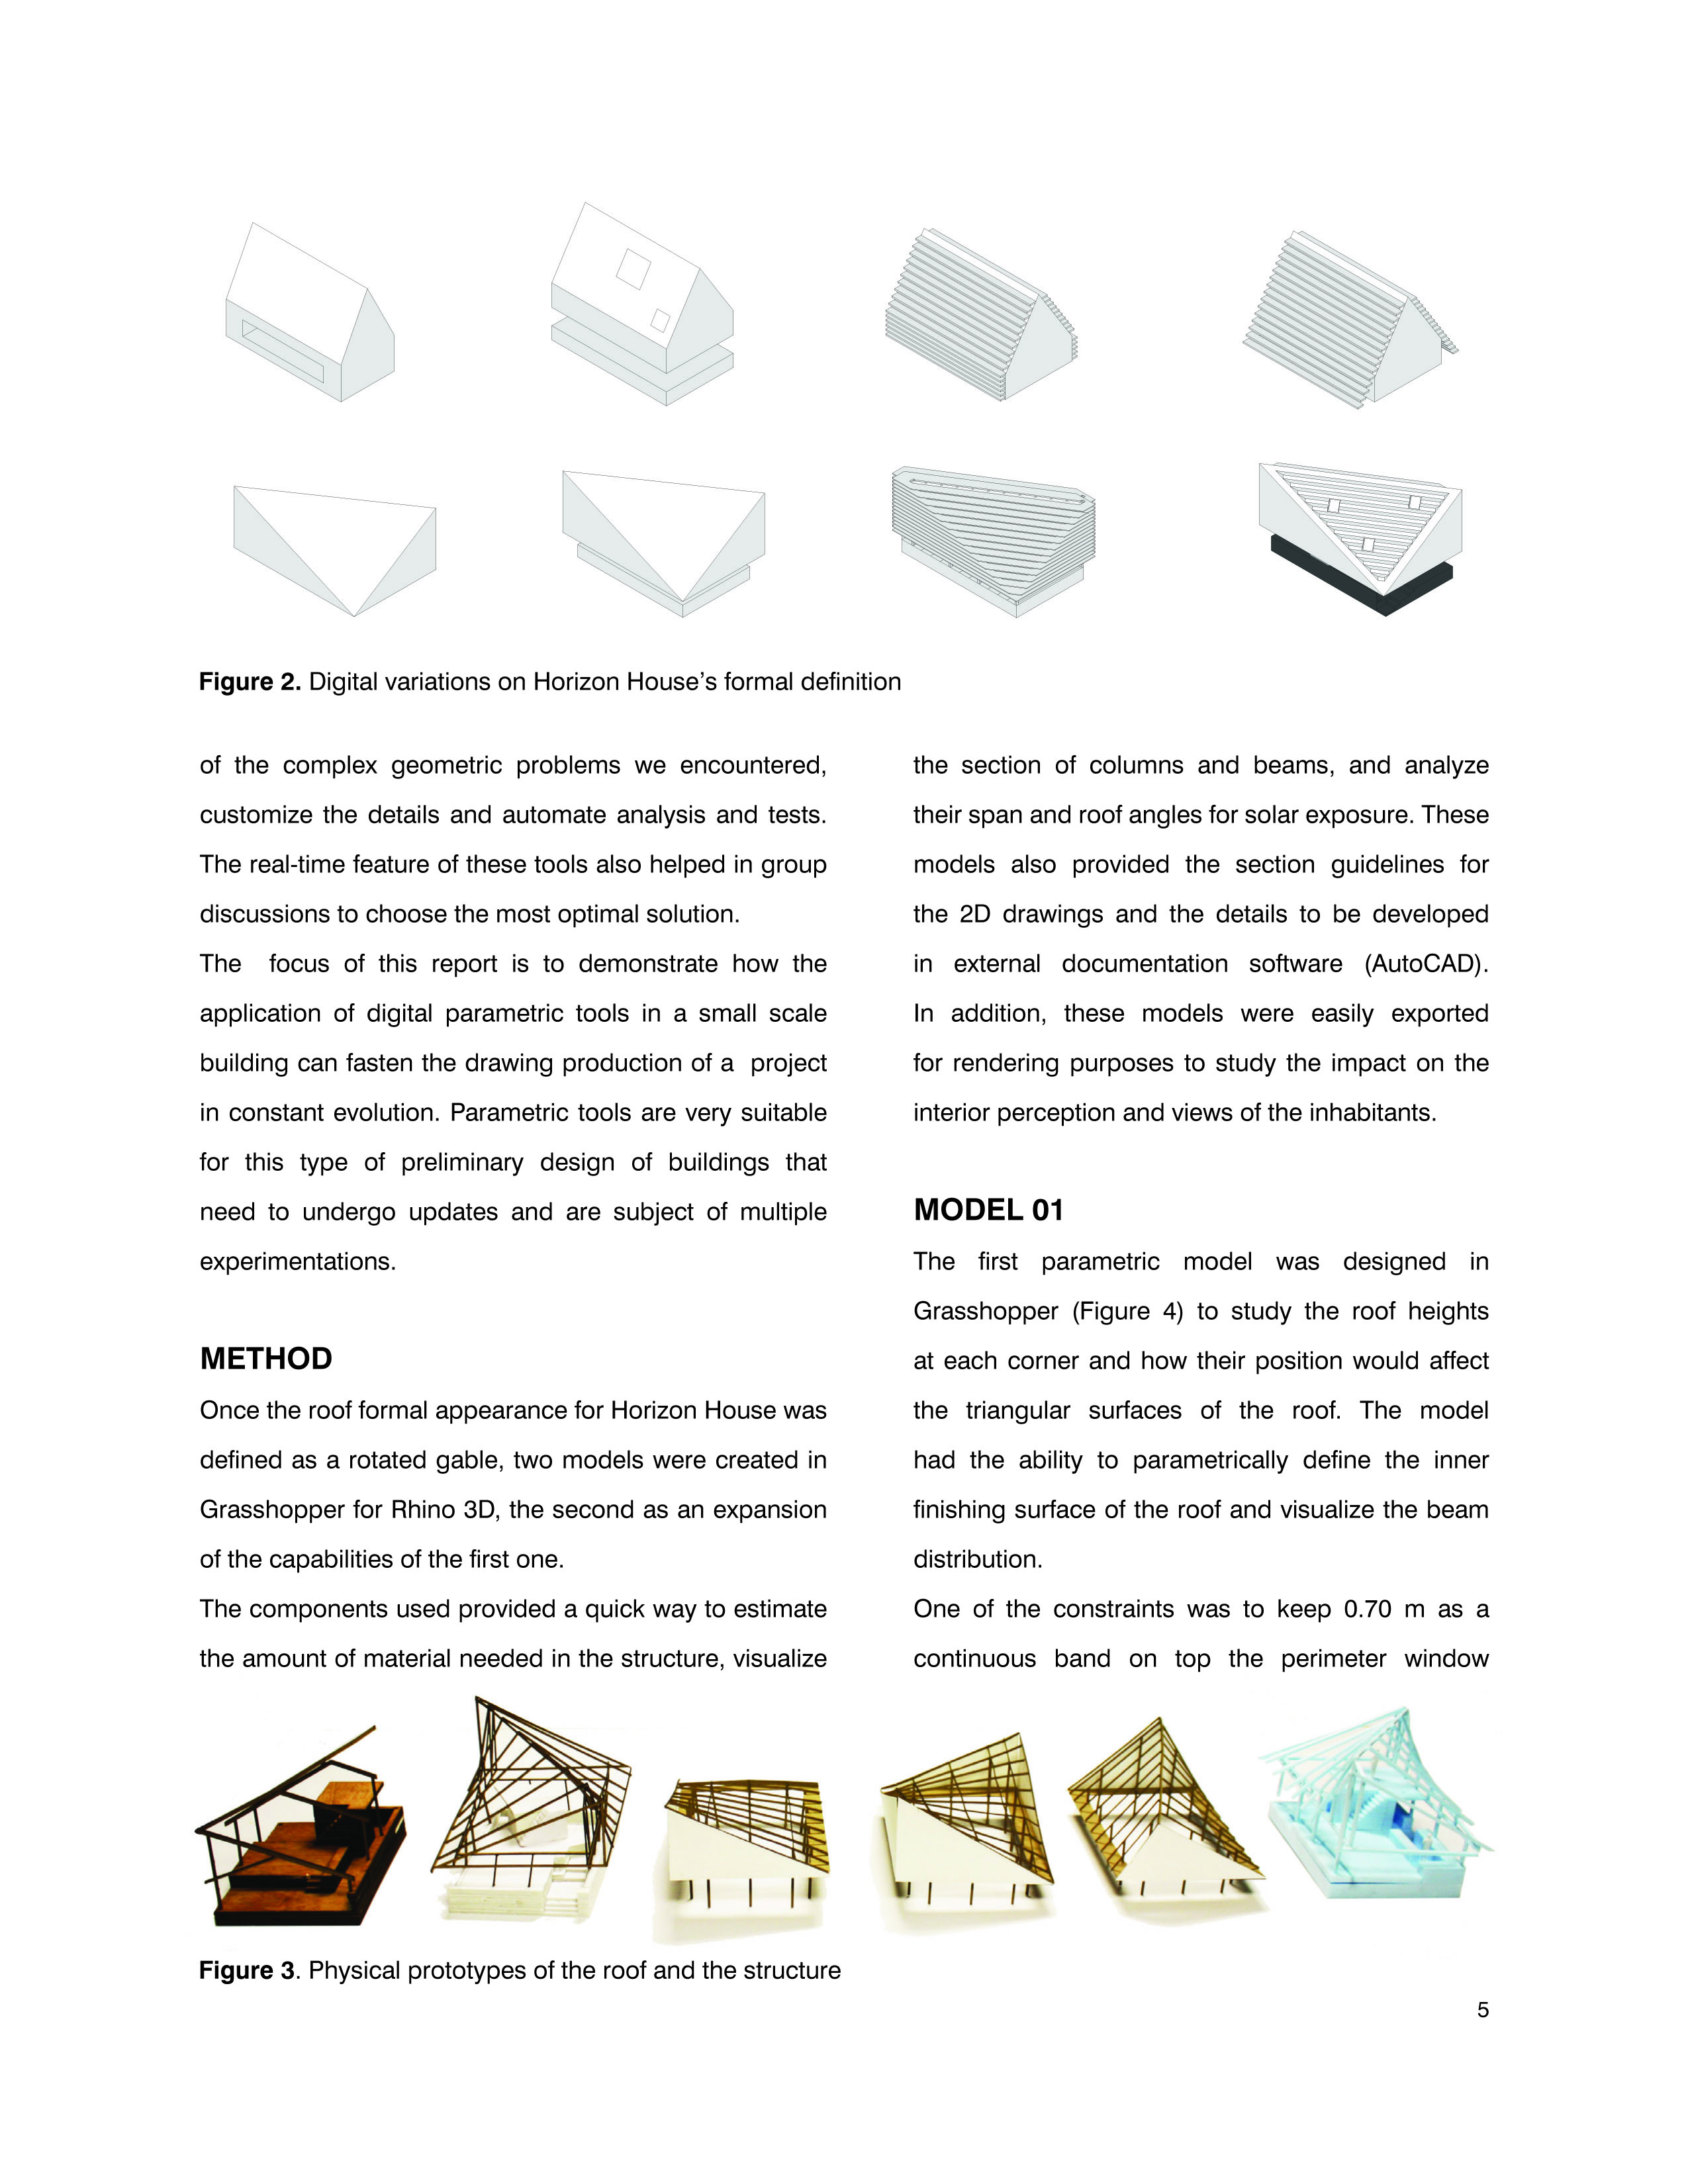 Applications of parametric design tools in Horizon House_Ana Garcia Puyol-Page5